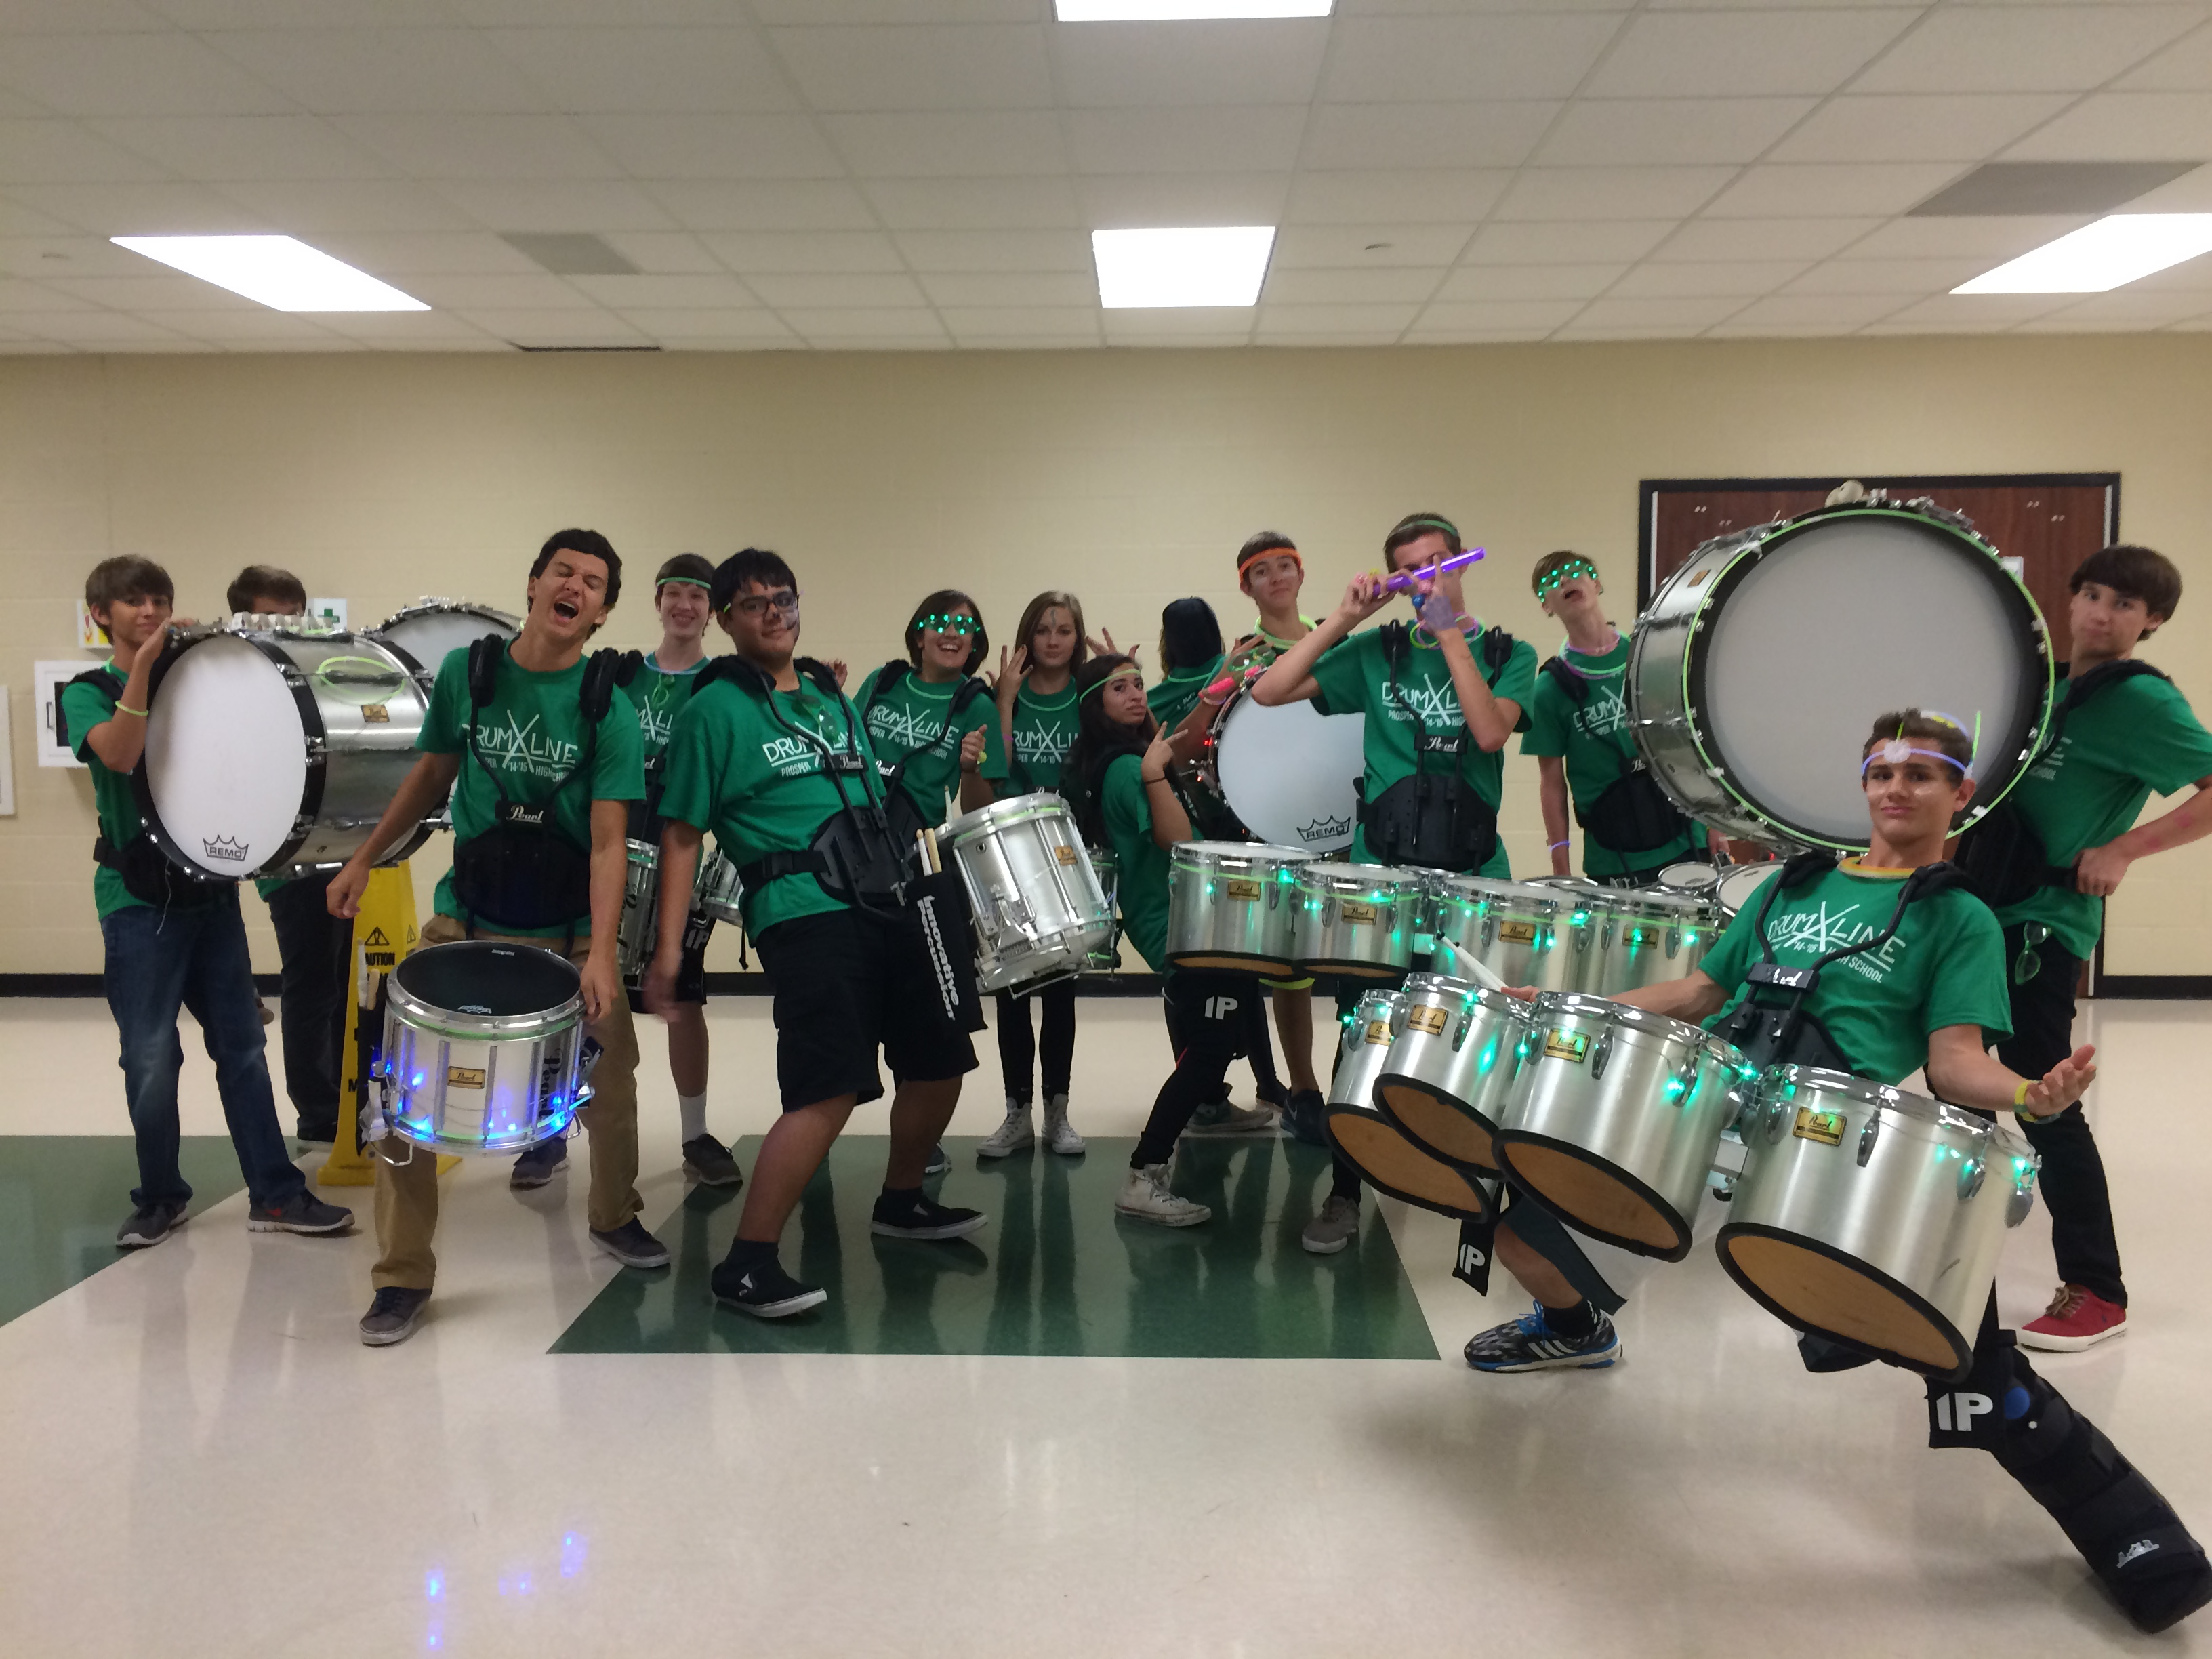 Design your own t shirt lesson plan - Phs Drumline Black Out Pep Rally T Shirt Photo